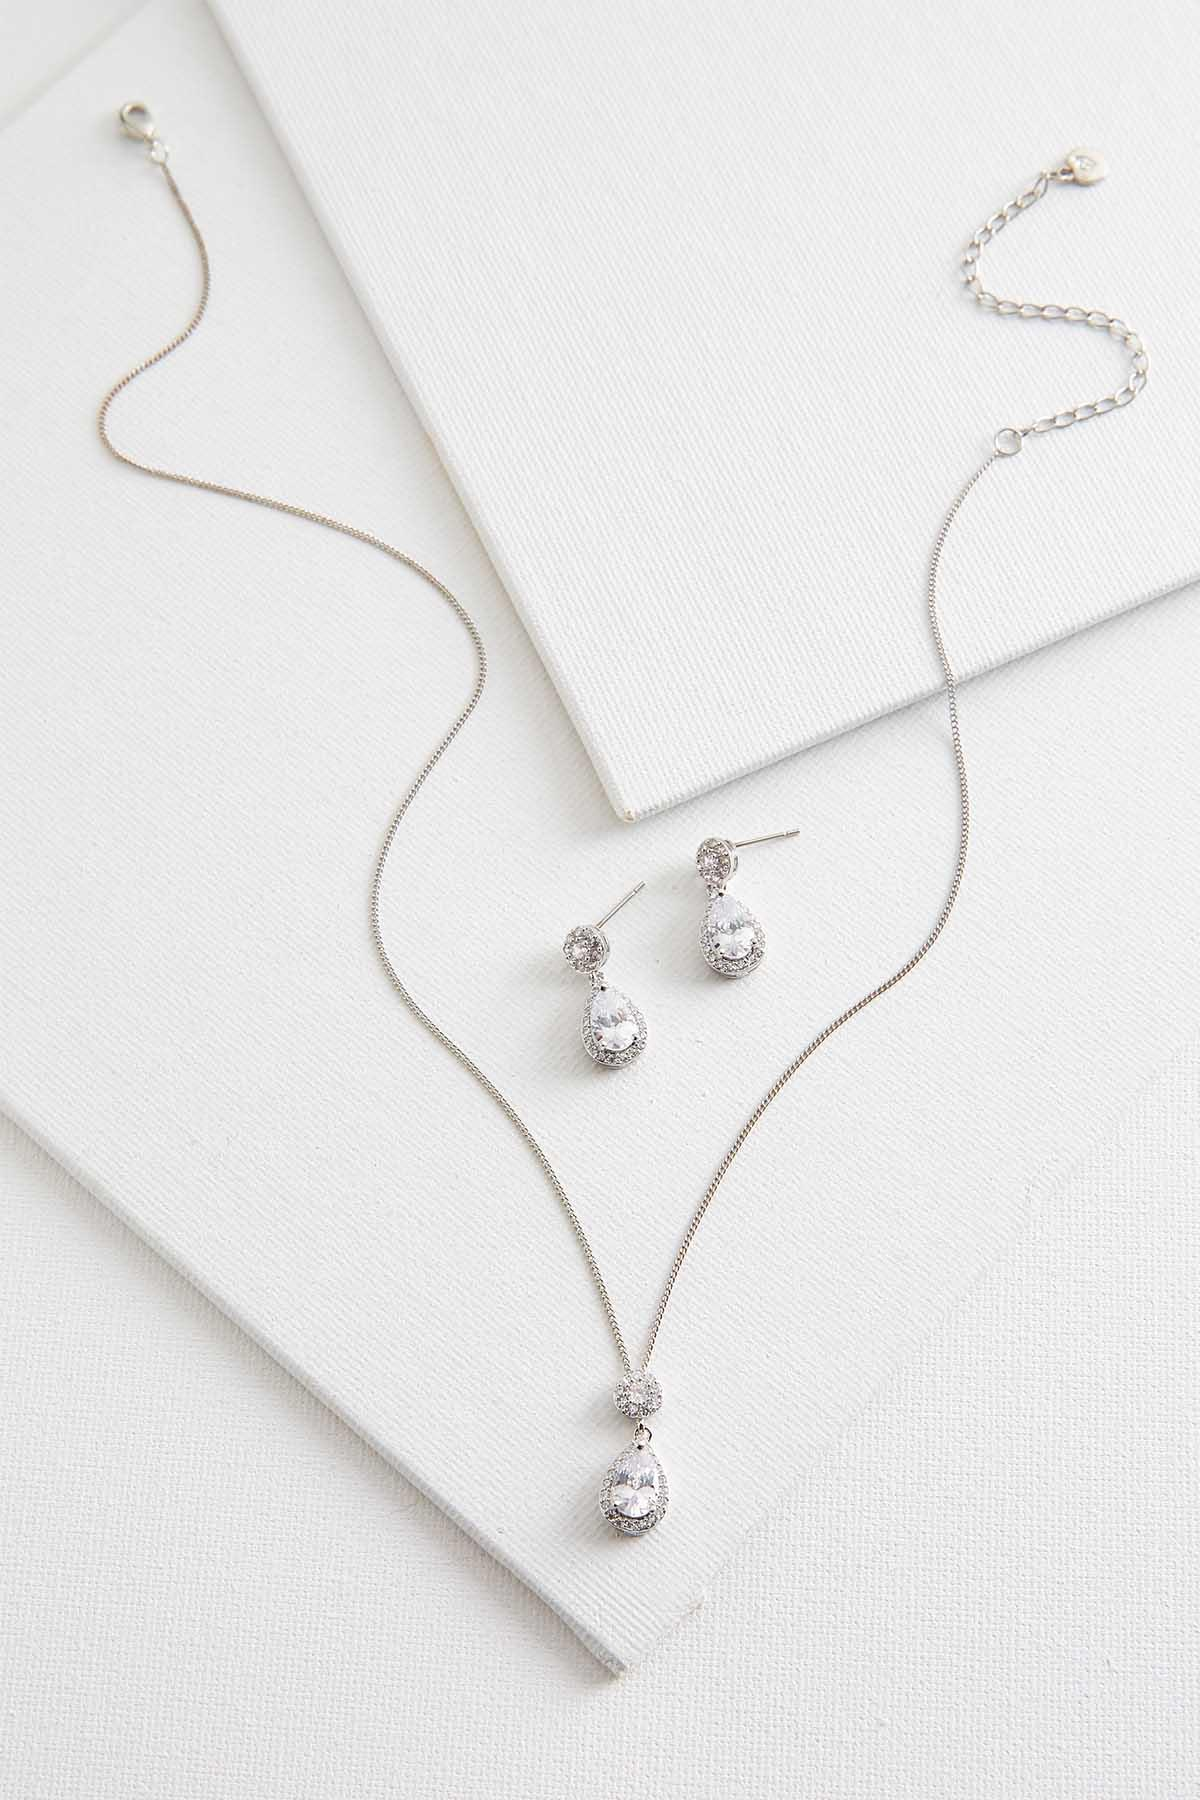 Tear Shaped Necklace And Earring Set